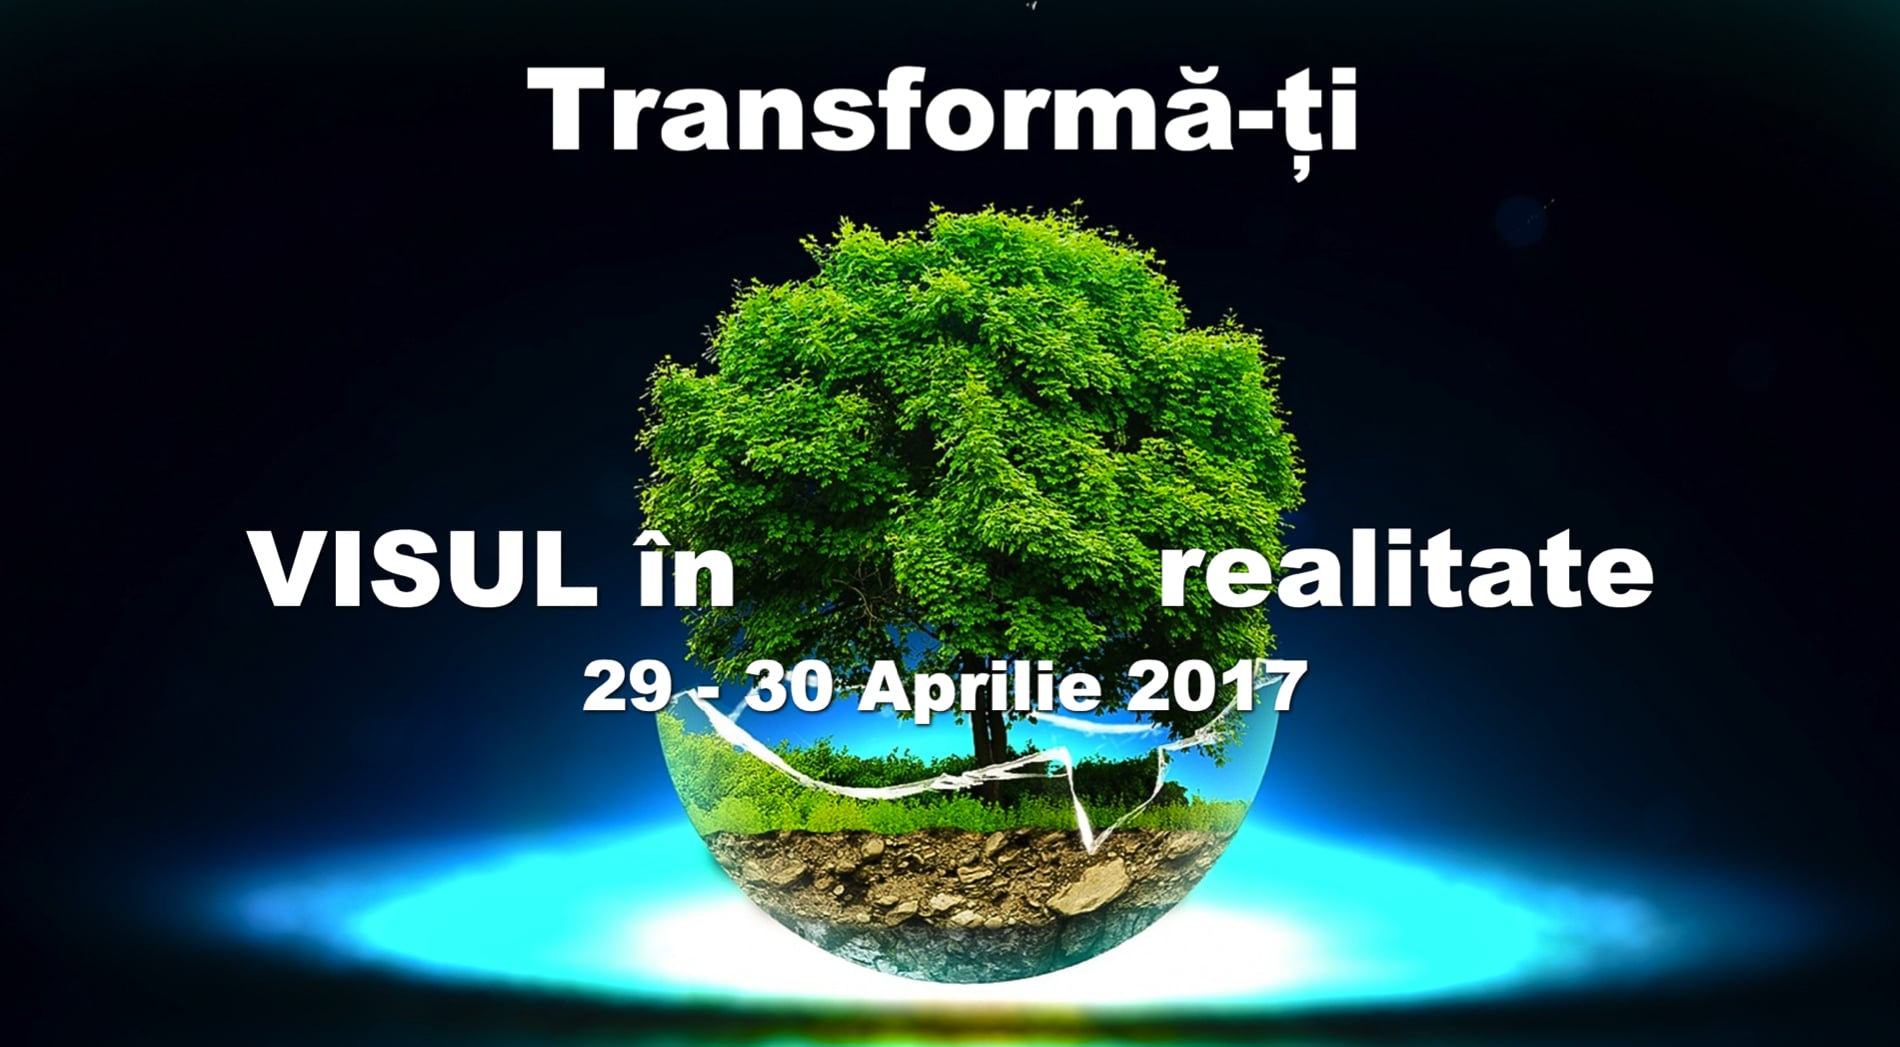 transforma-ti visul in realitate